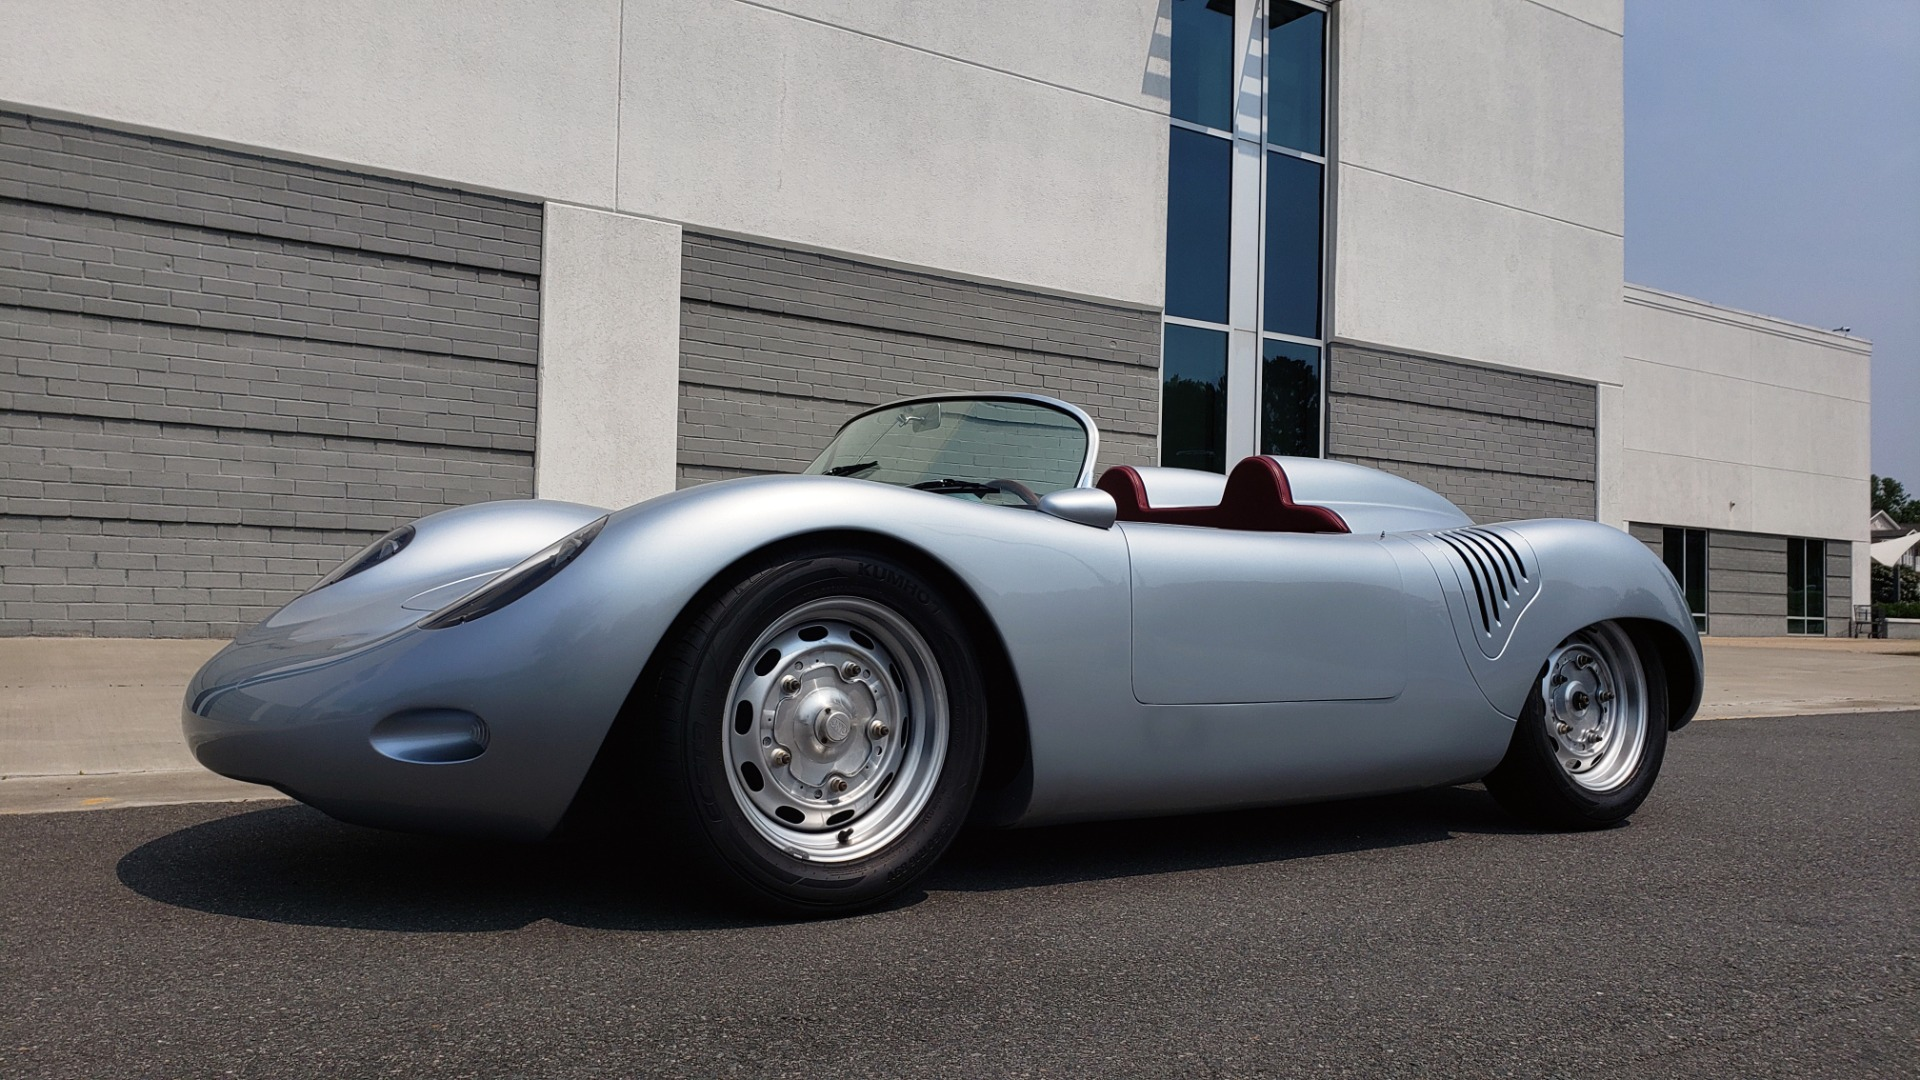 Used 1960 Porsche 718 RSK SPYDER REPLICA / 2275CC W/44MM WEBER (160HP) / 4-SPD MANUAL for sale $39,999 at Formula Imports in Charlotte NC 28227 2